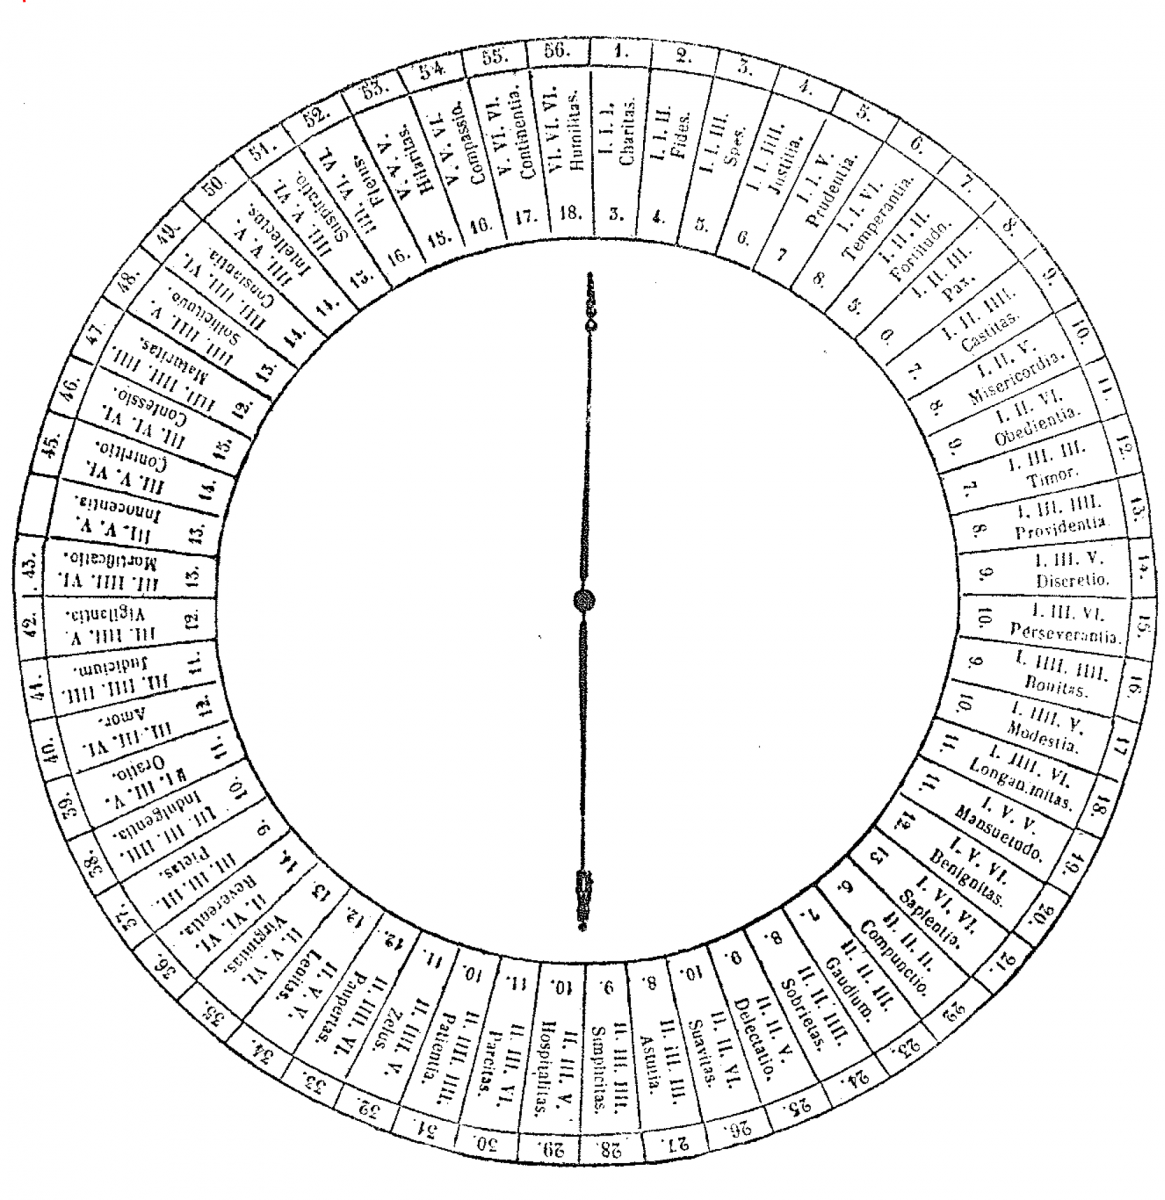 Wibold's Ludus Regularis, a 10th Century Board Game